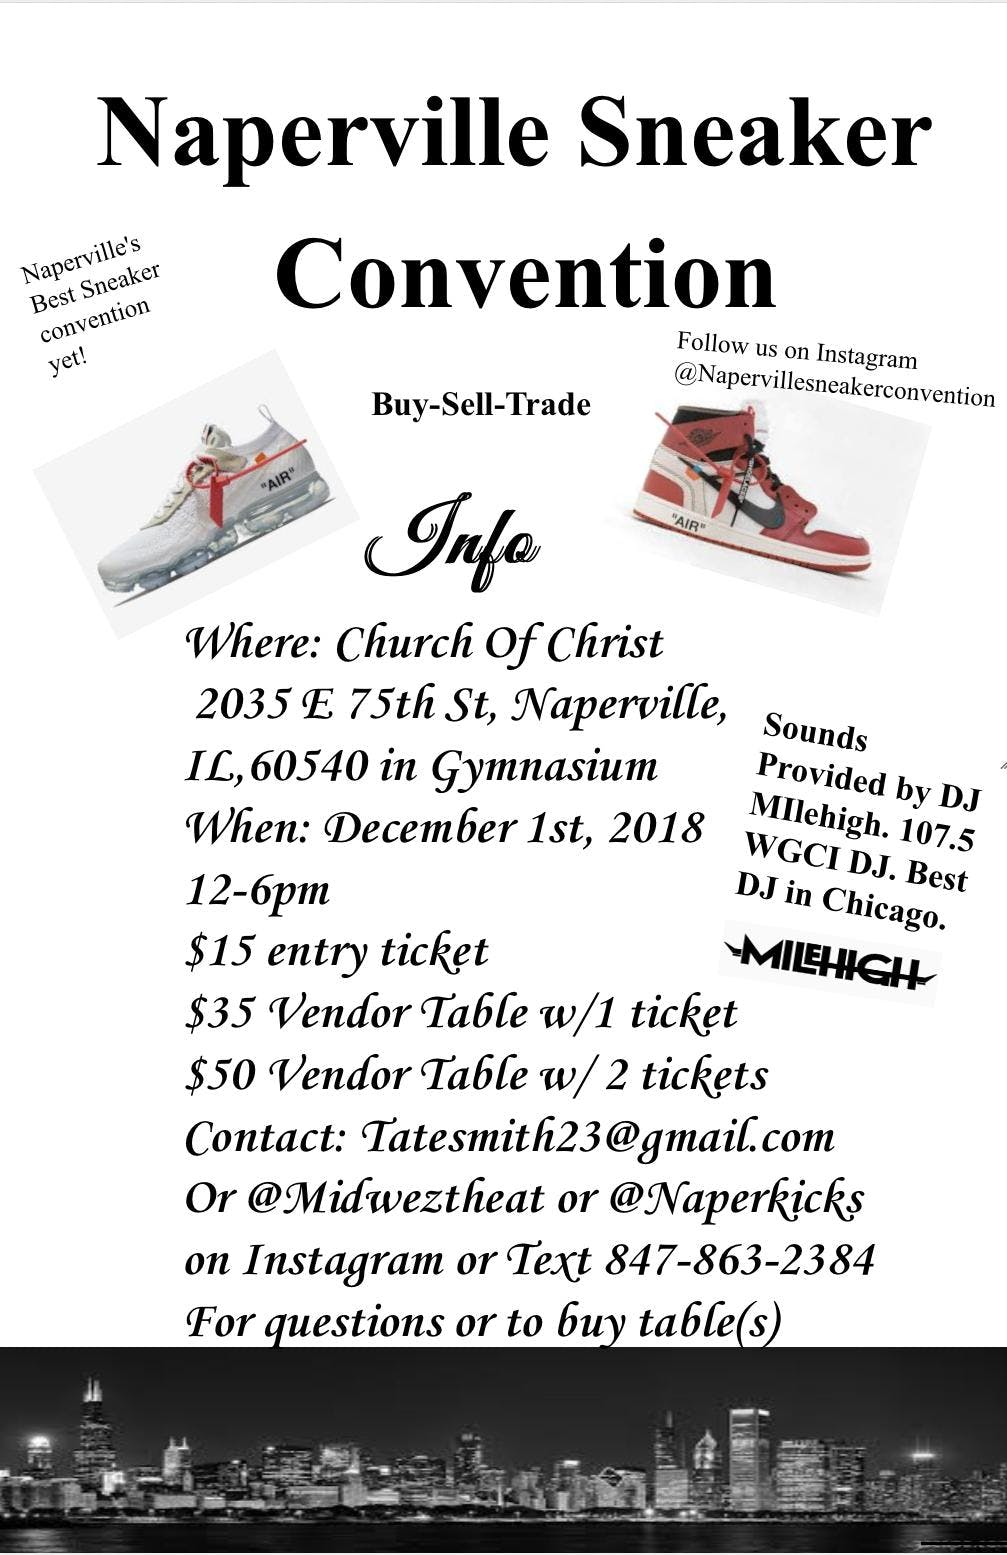 Naperville Sneaker Convention